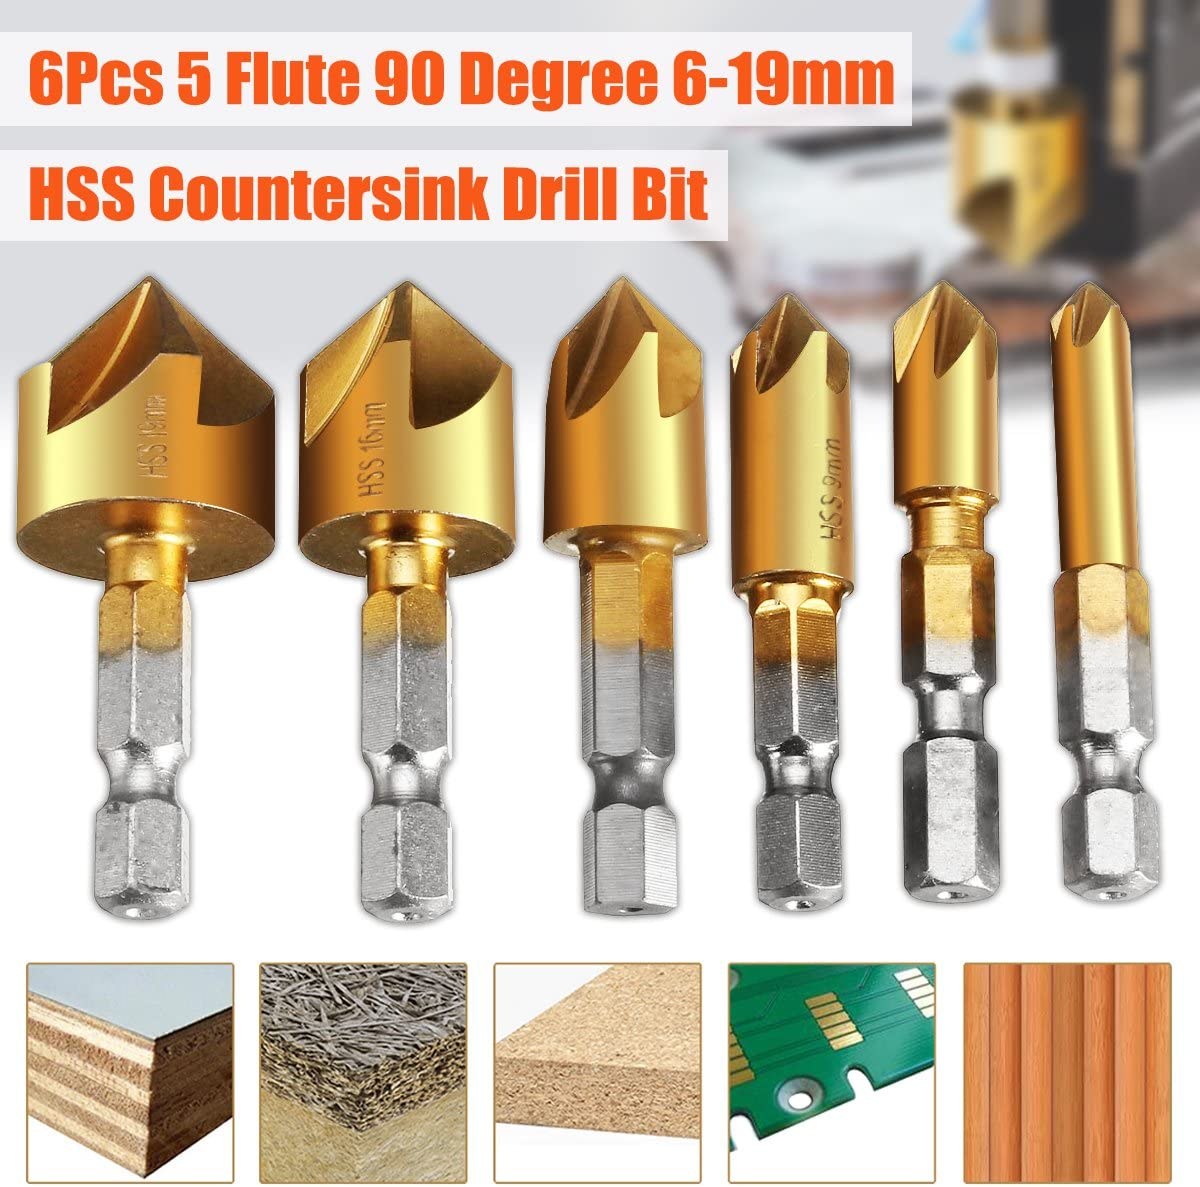 Color : Gold Basic Cellphone Cases CZMY 5Pcs//Set Industrial Countersink Drill Bit Tri-Flat Shank Quick Change Kit Tool Drill Bits